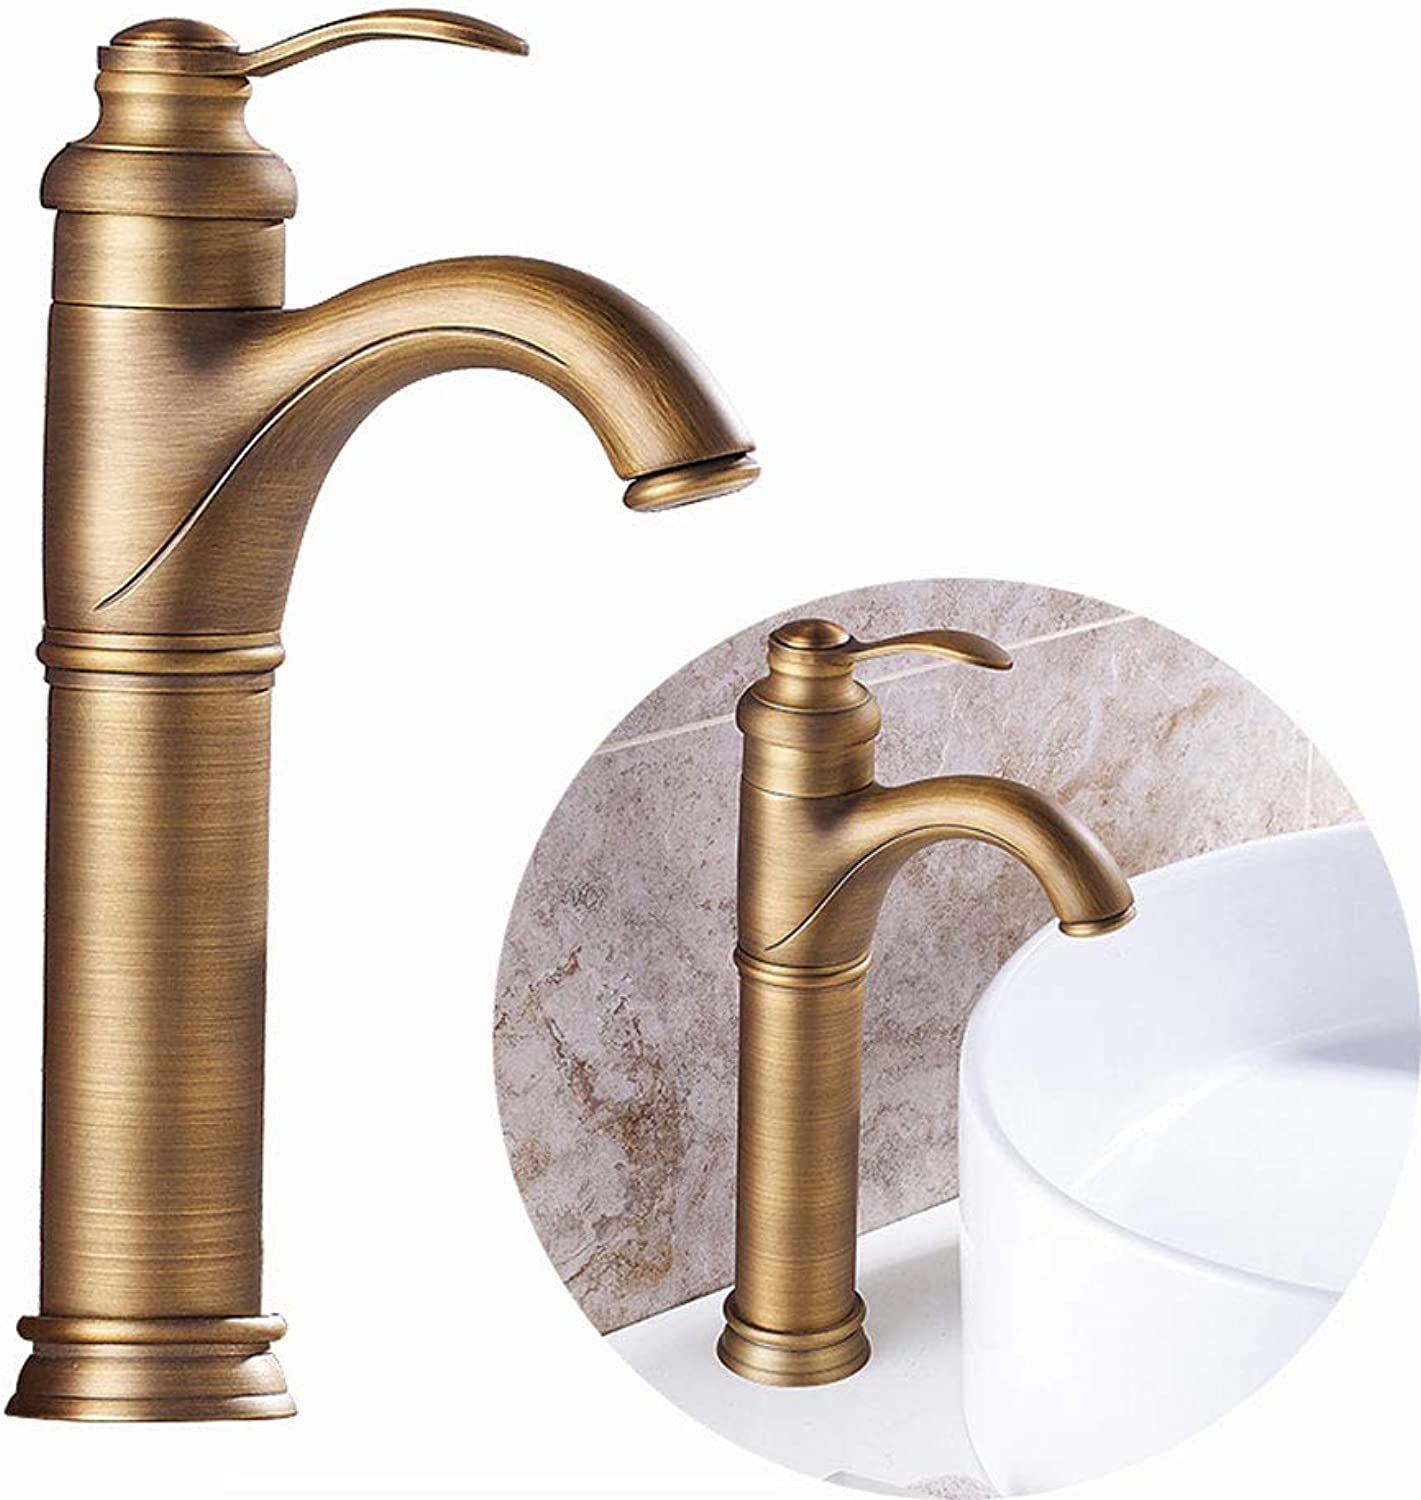 Sanqing Faucet, Solid Copper Low Lead Single Handle Kitchen Bathroom Faucet European Retro Hot And Cold Water Mixer,gold,High